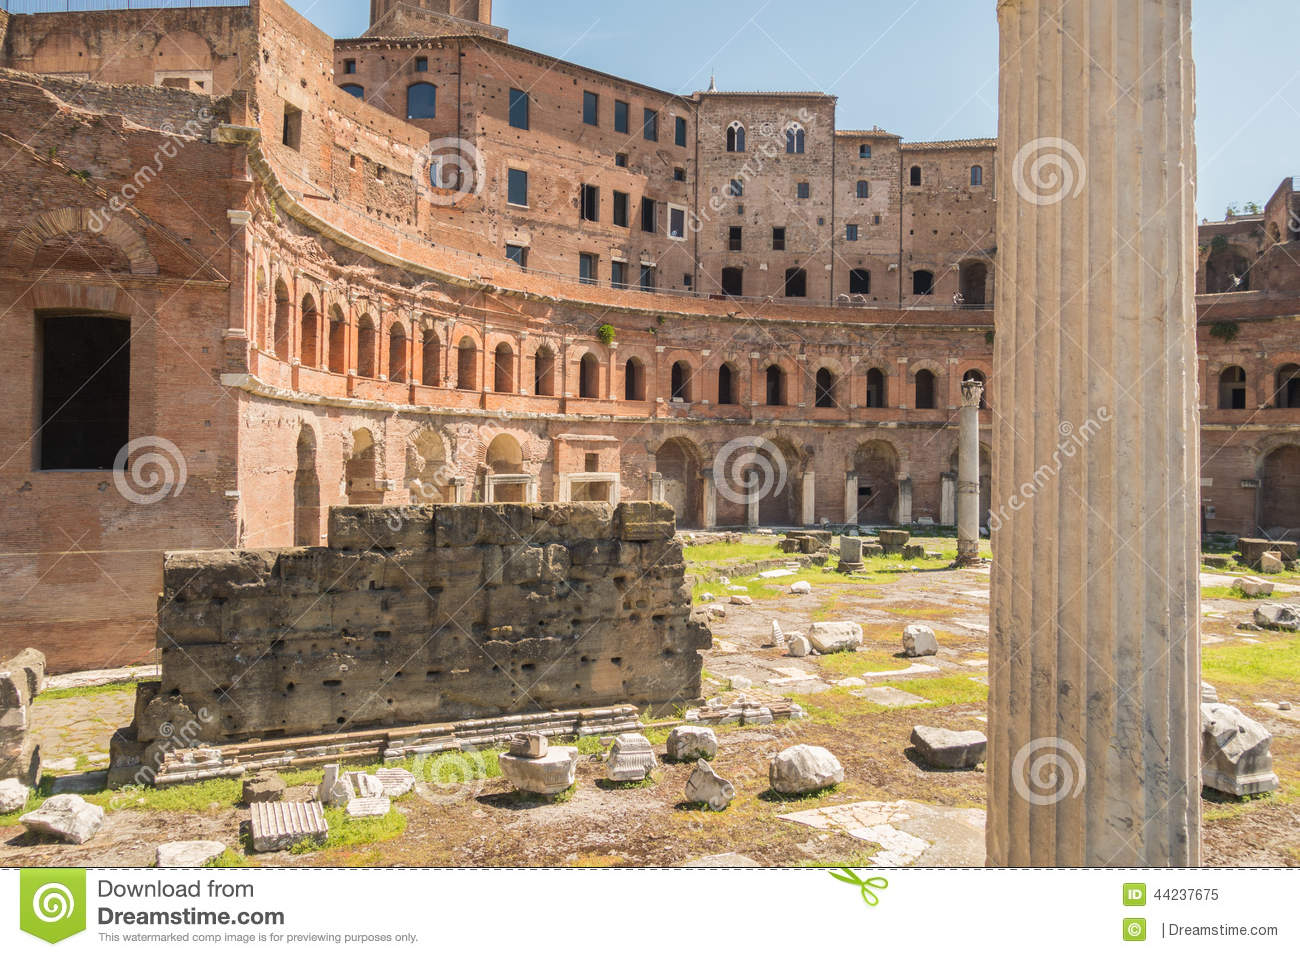 The Ruins Of The Roman Forum Stock Image - Image of architecture